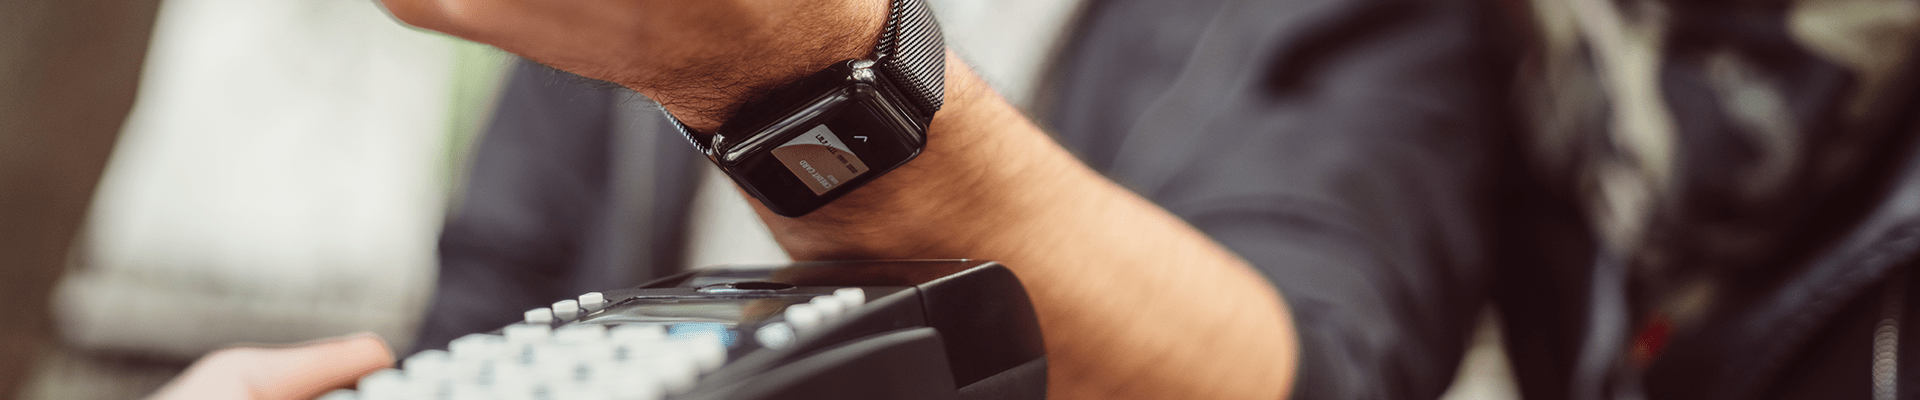 pay with smart watch